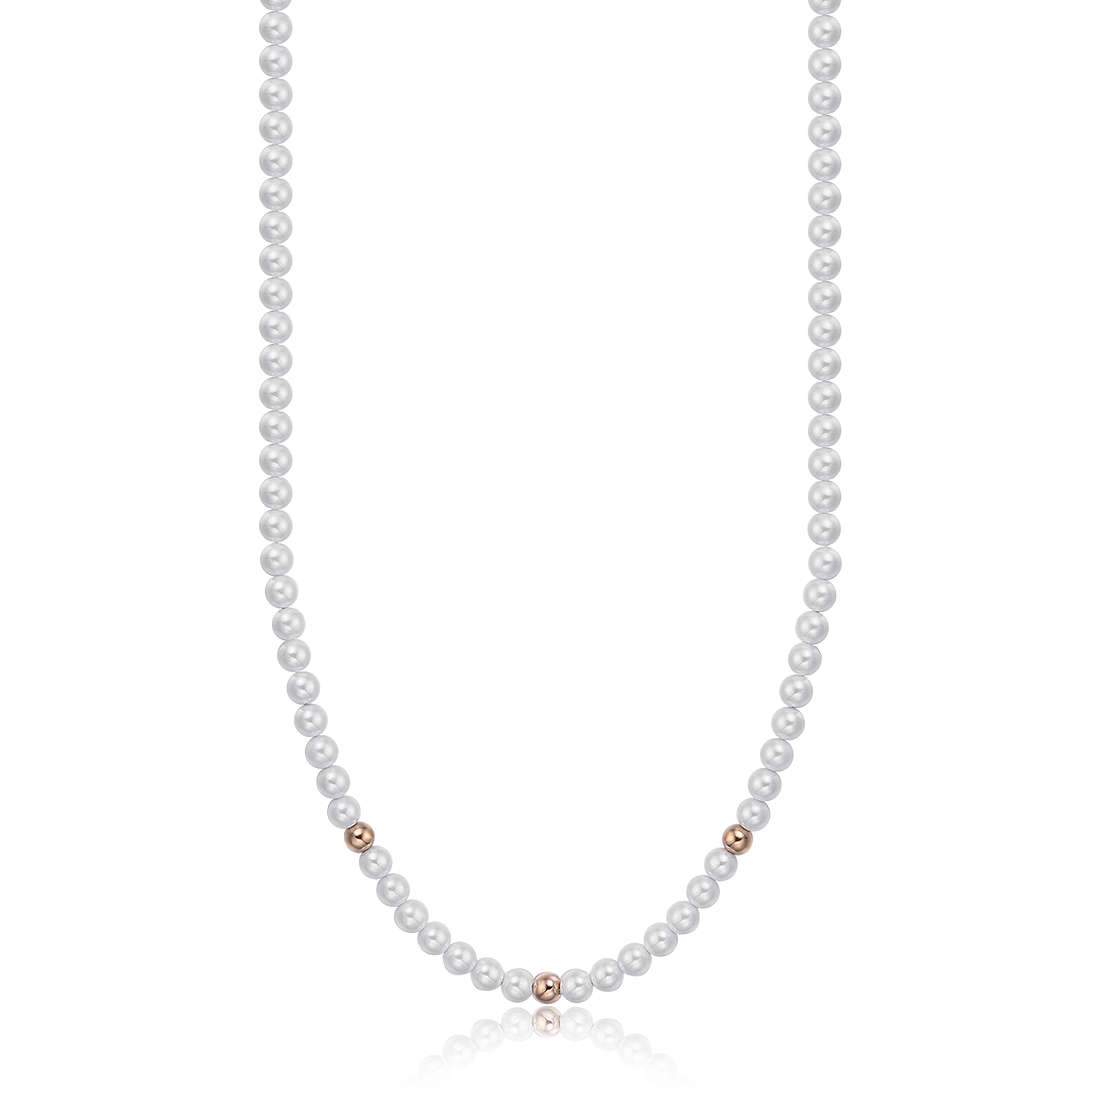 Luca Barra CK1440 Steel Necklace with Pearls - Goldy Jewelry Store